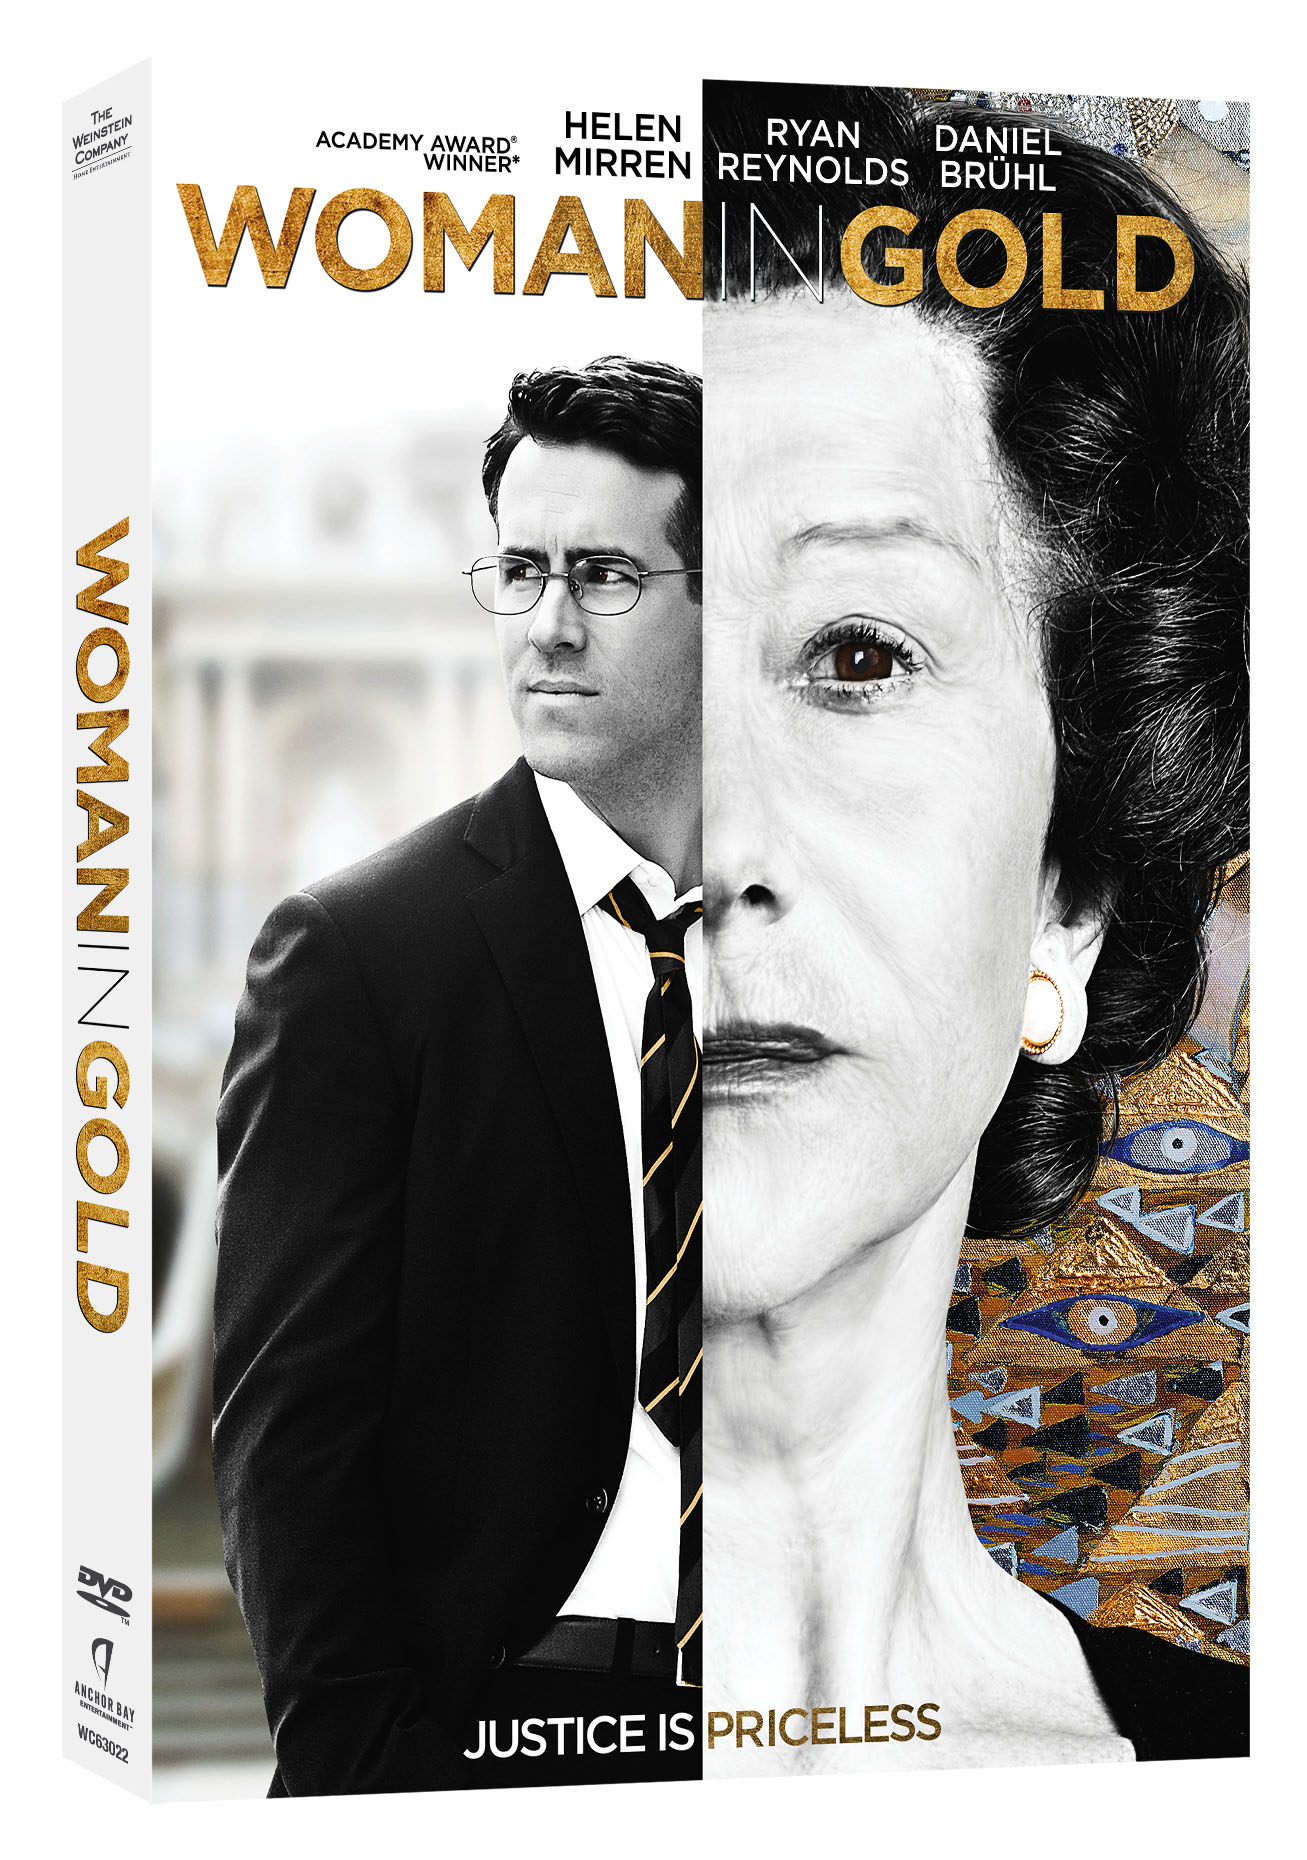 Enter a giveaway for a DVD of Woman in Gold, AND a DVD of Big Eyes, AND a DVD of The King's Speech AND a $25 Visa gift card! Ends midnight July 14.